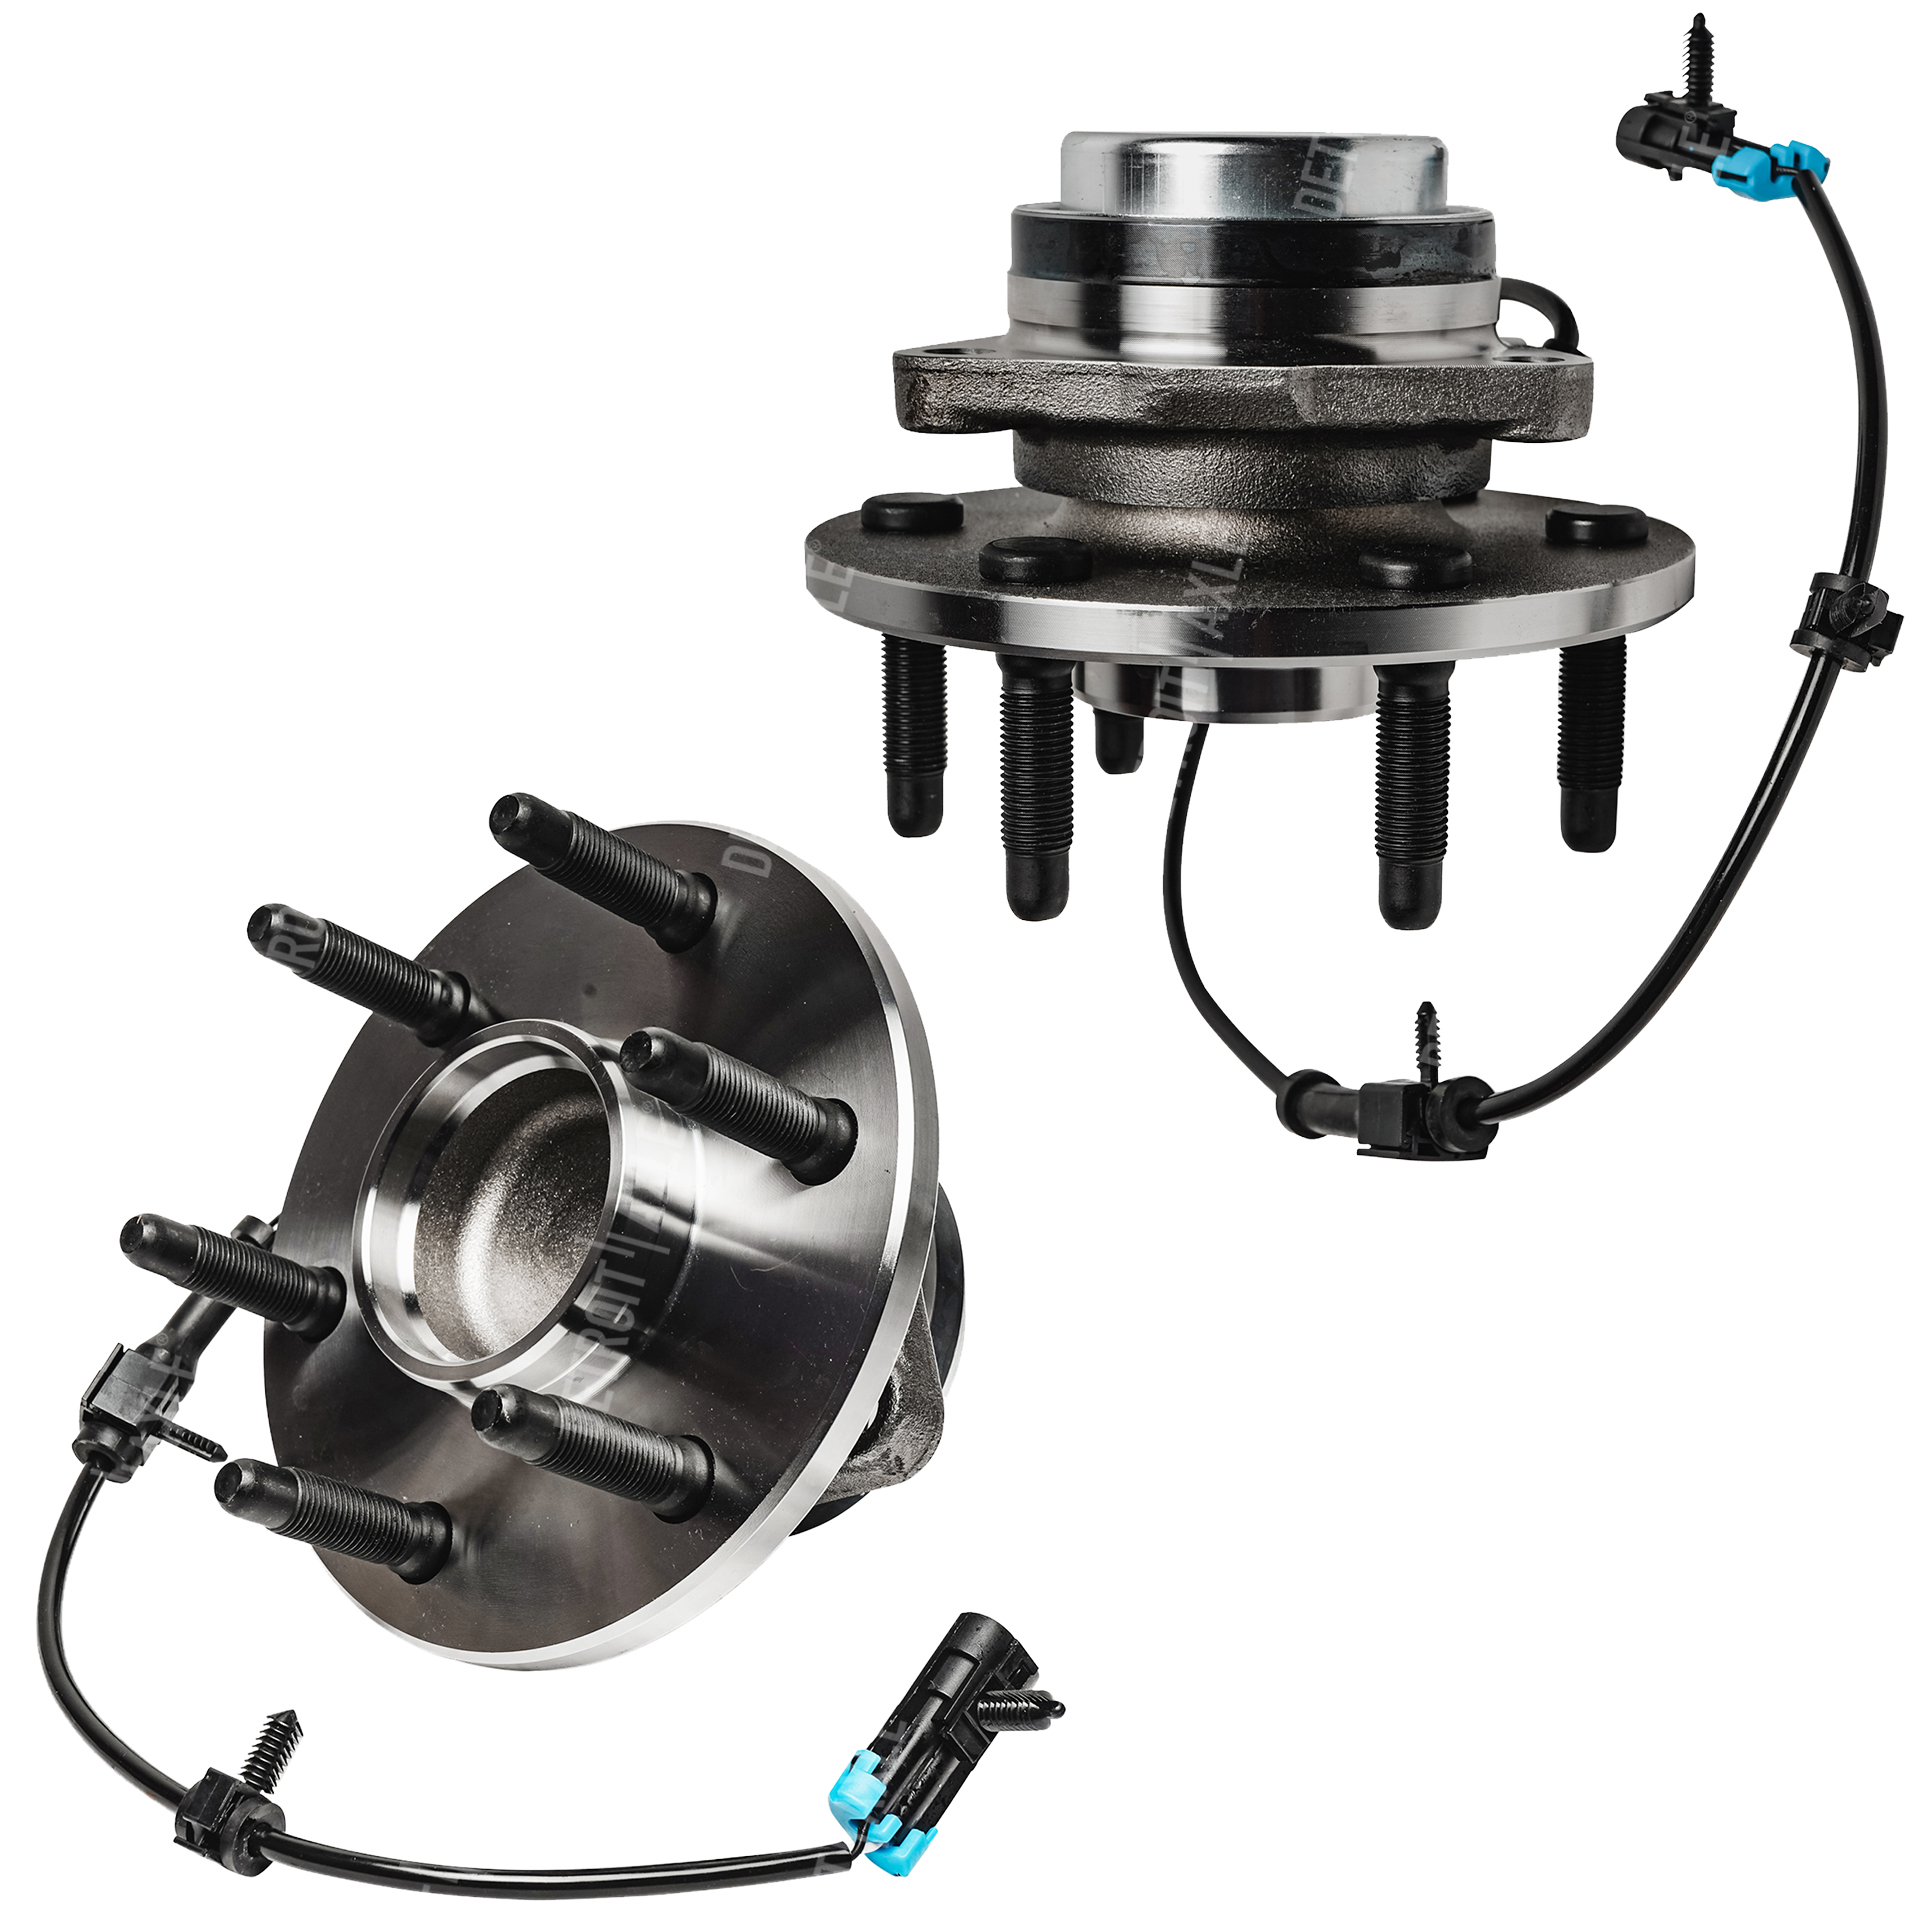 2WD Front Wheel Bearing and Hub Assembly for Sierra, Silverado